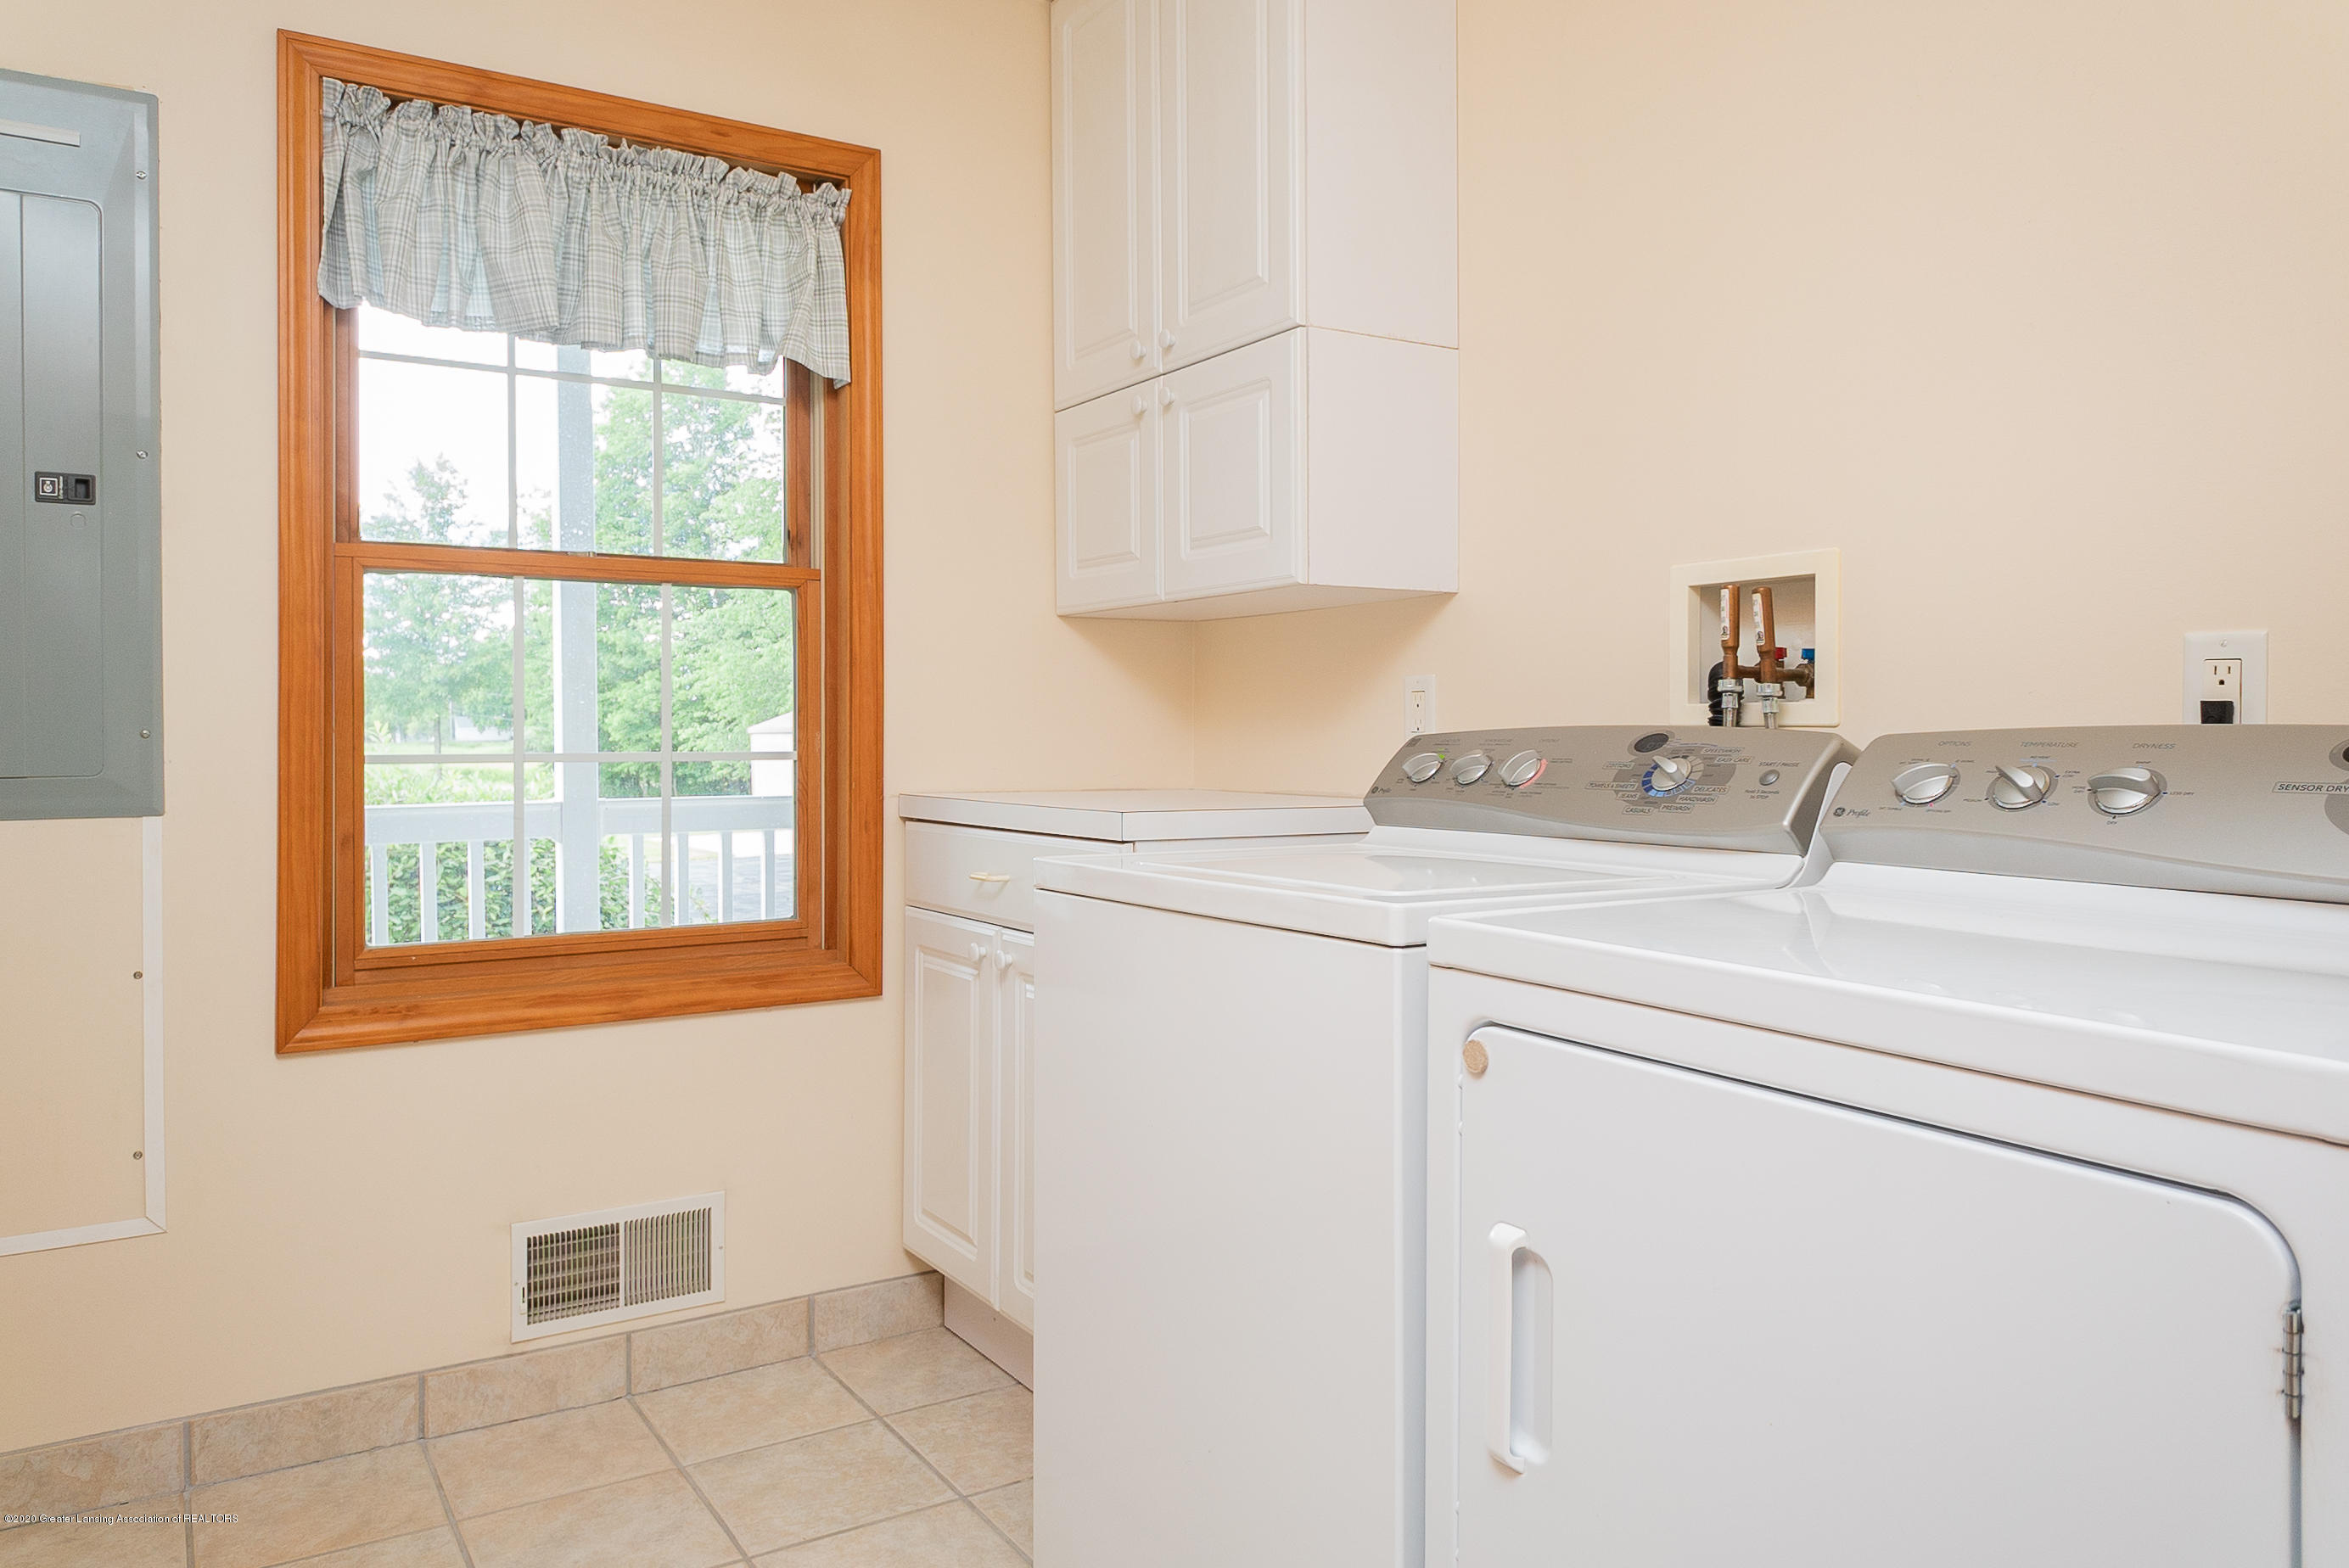 7337 Howe Rd - Laundry - 19